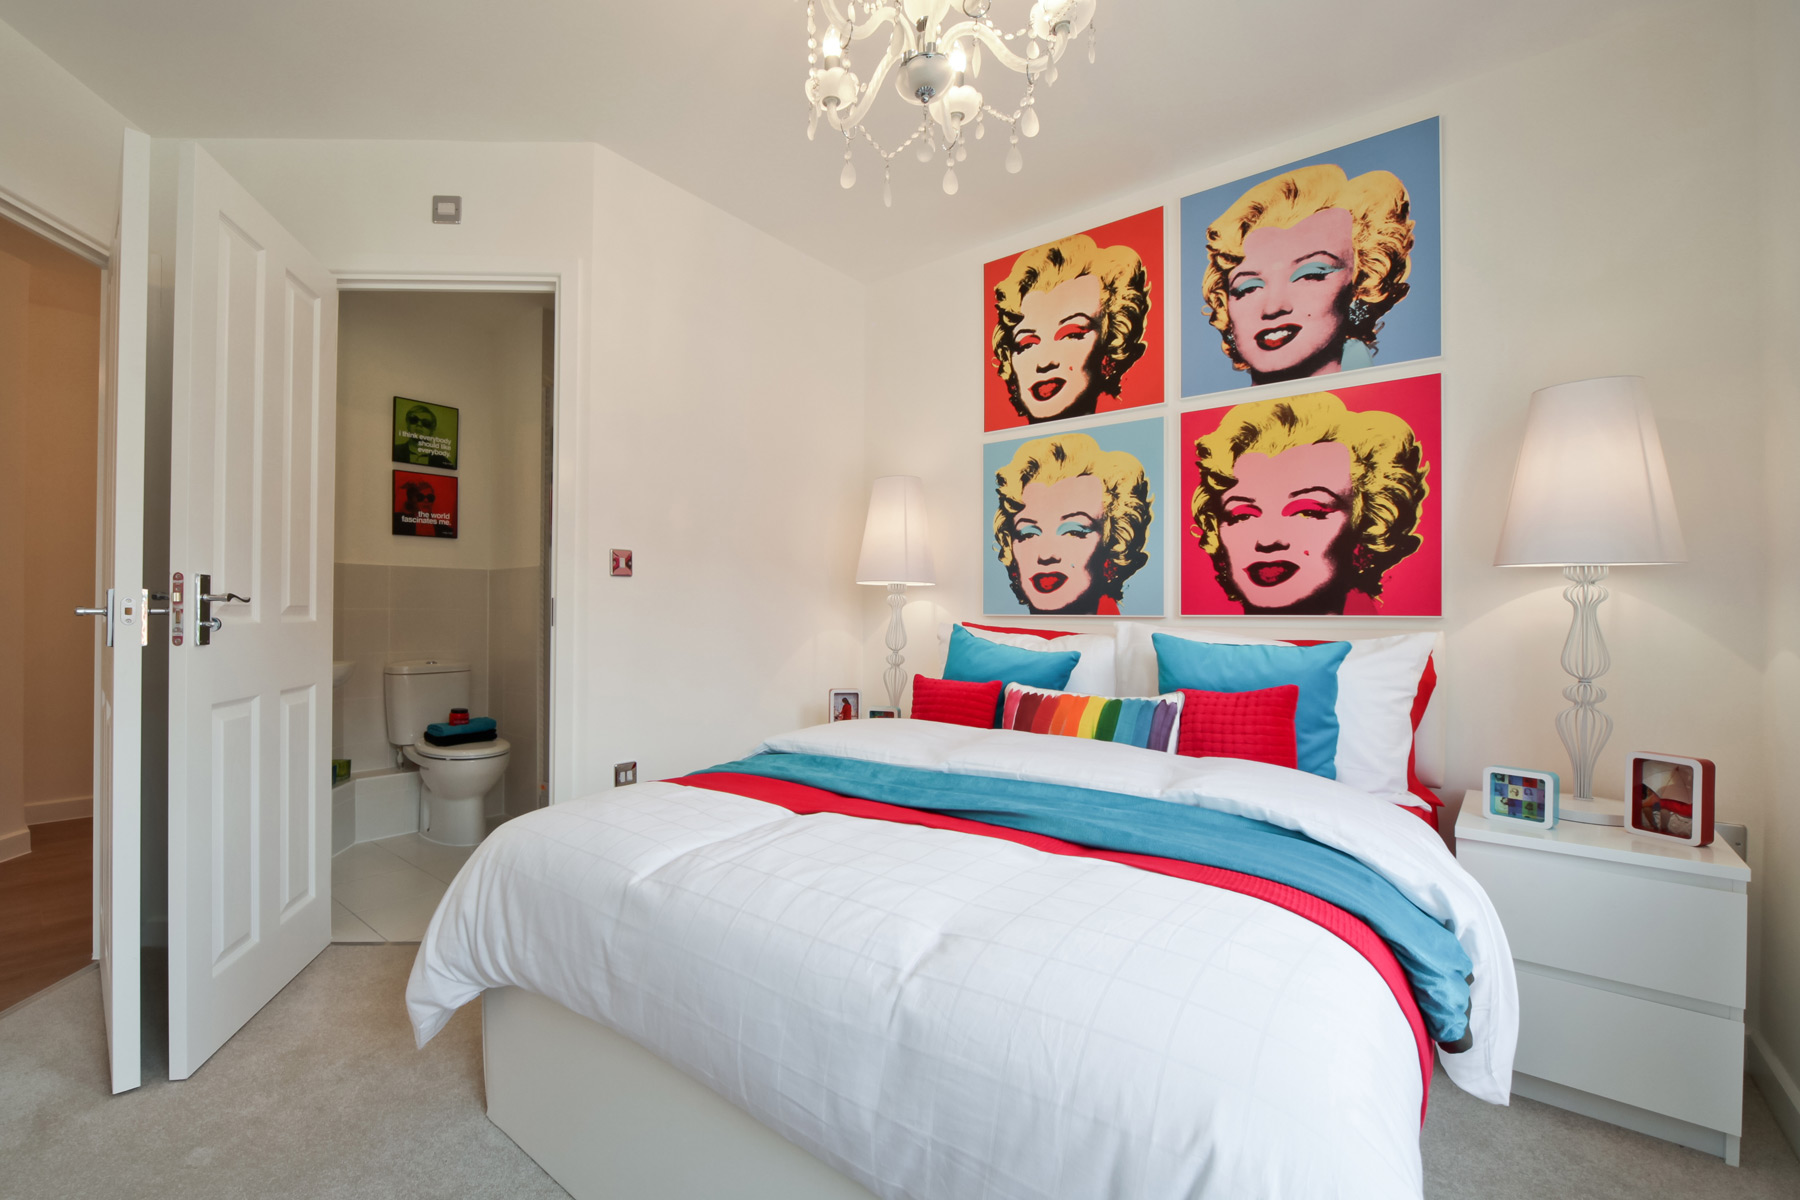 Typical Taylor Wimpey apartment en suite bedroom.